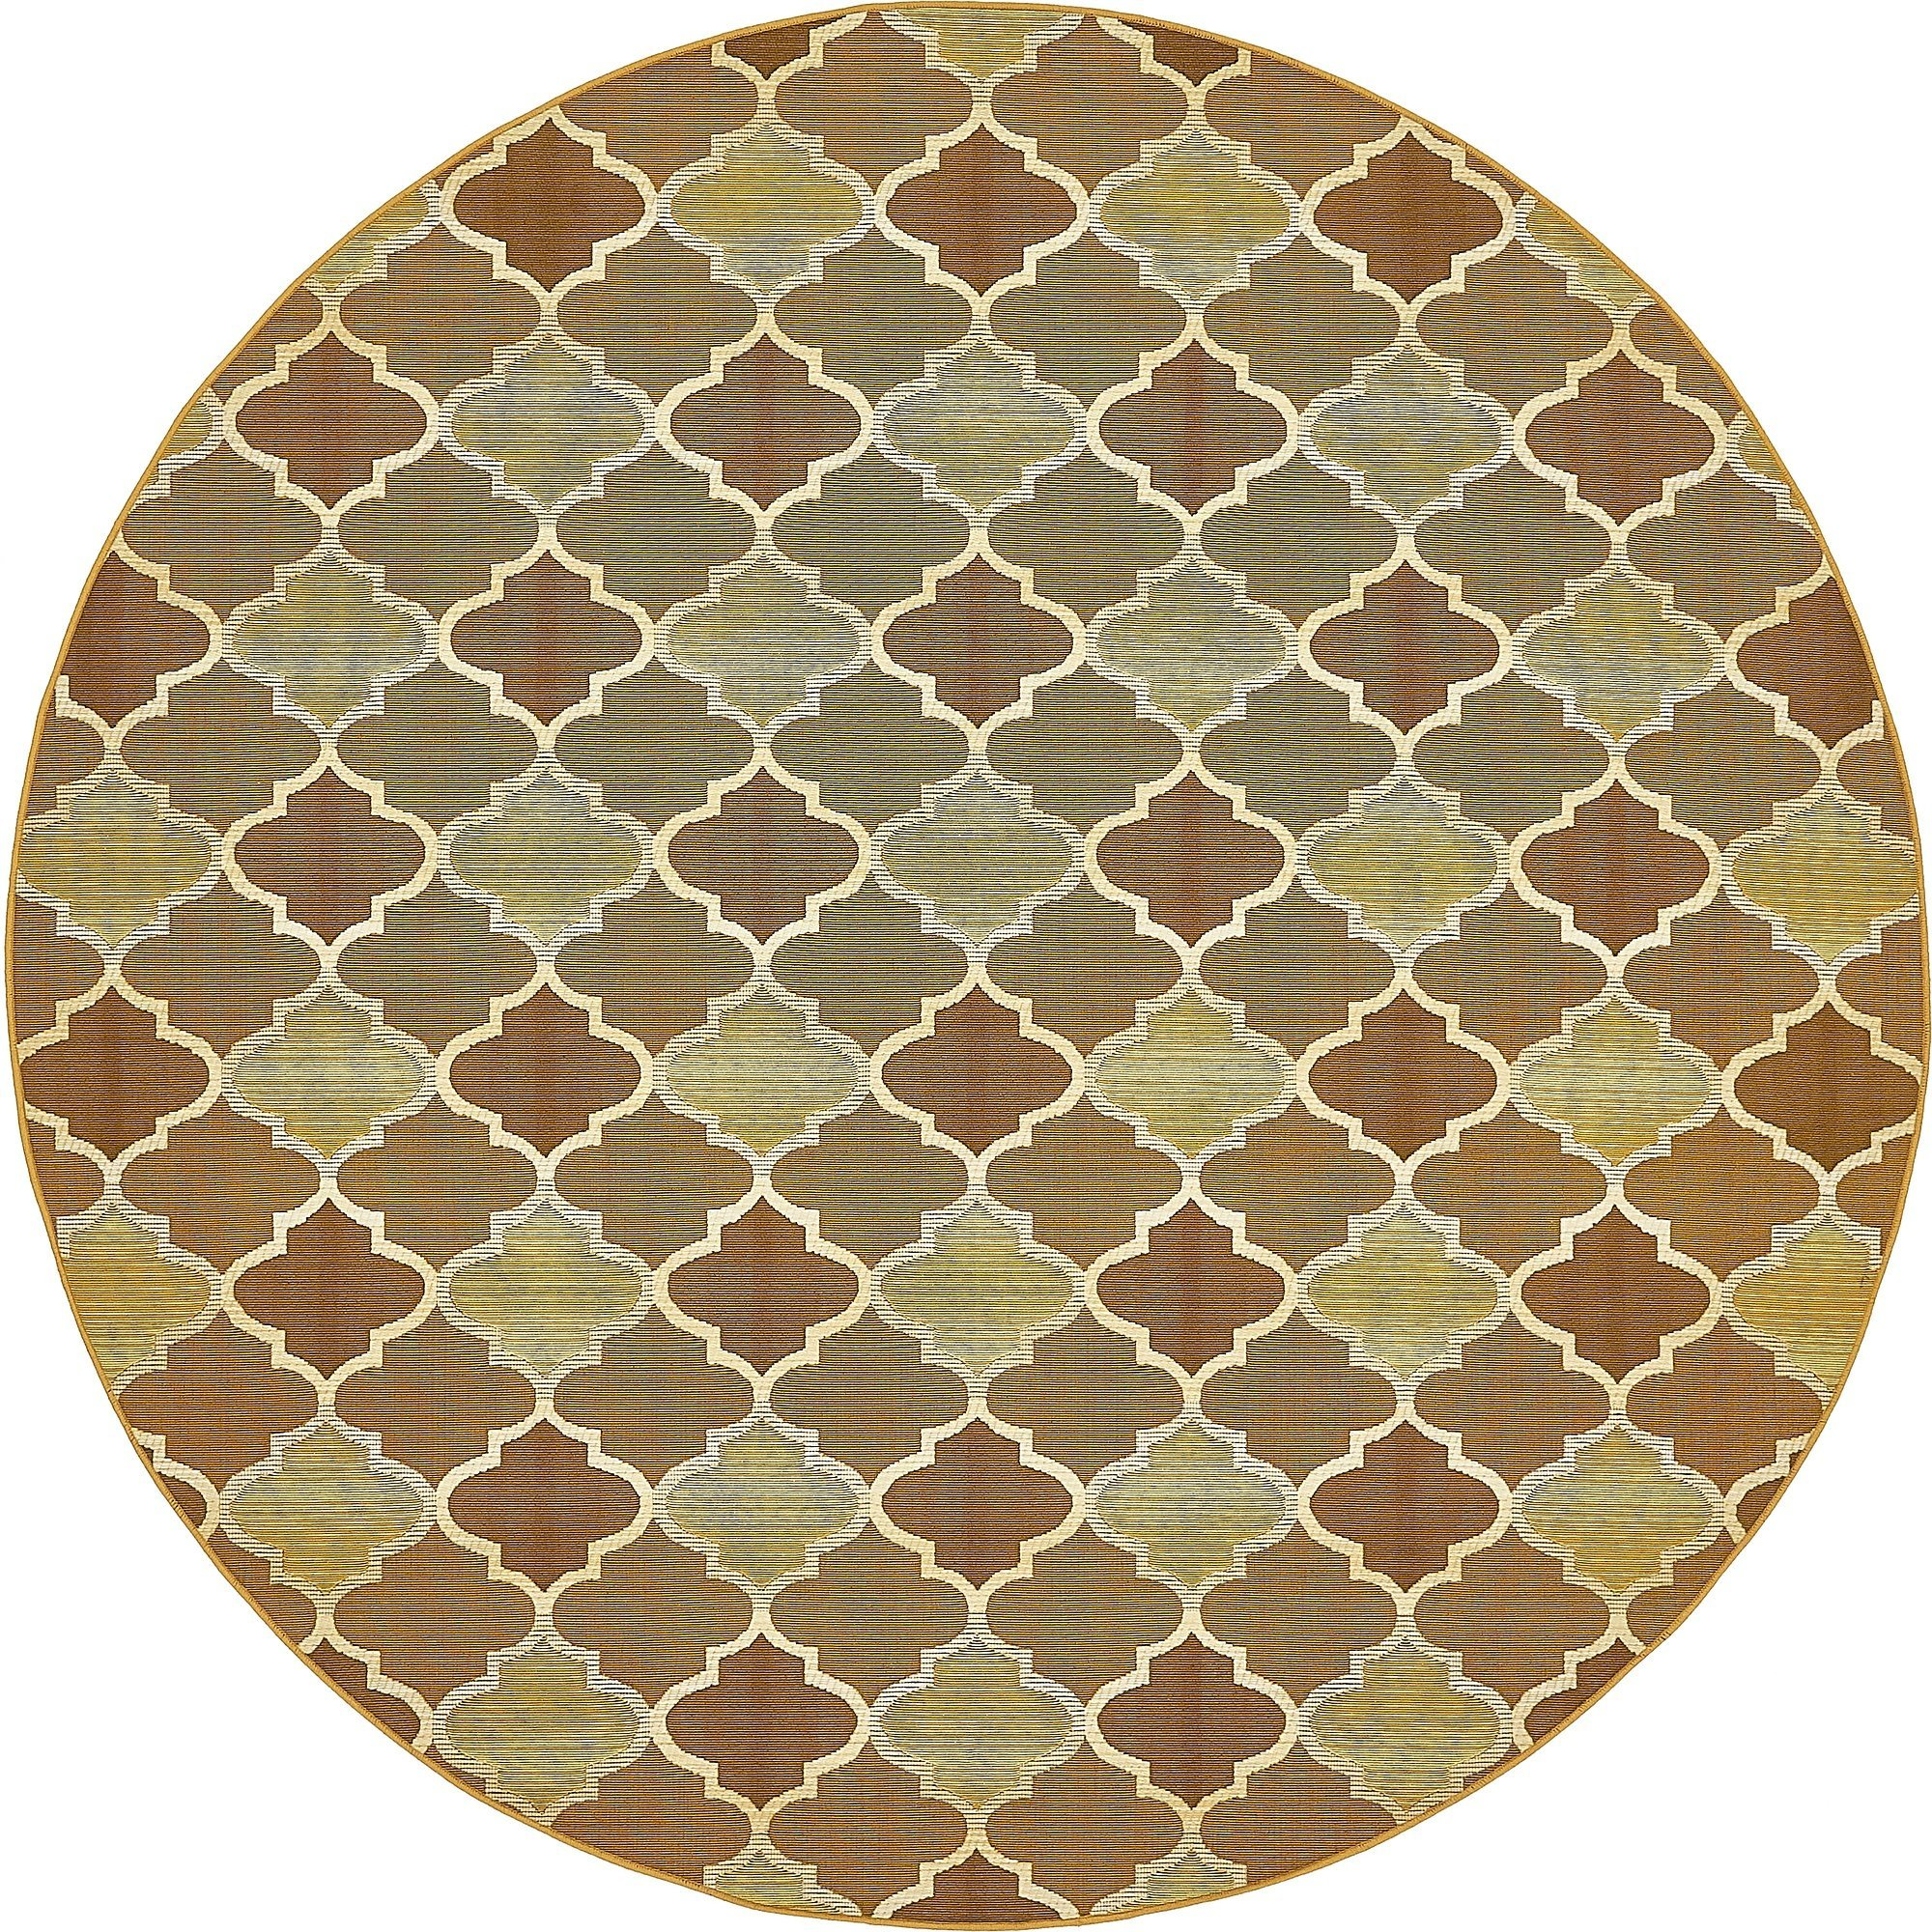 Unique Loom Eden Outdoor Collection Gold 8 ft Round Area Rug (8' x 8')